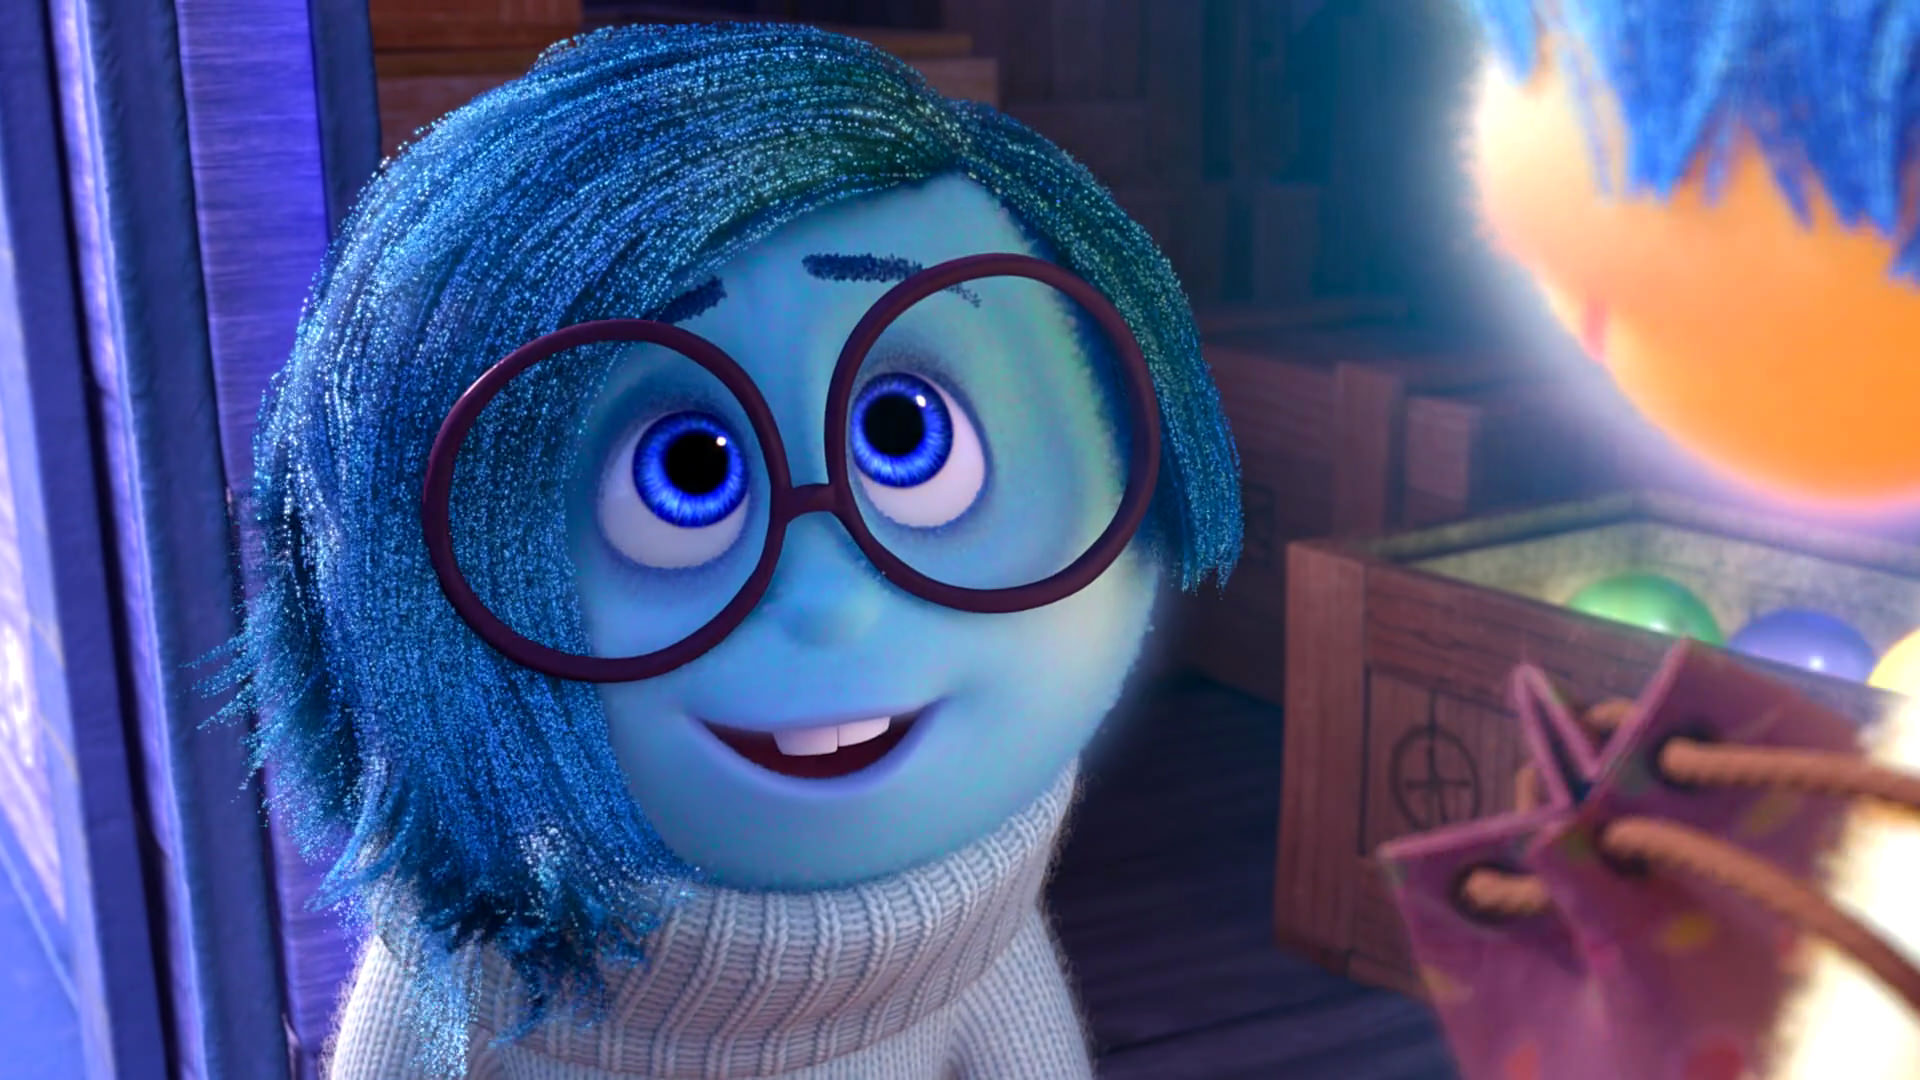 tristesse sadness pixar disney character personnage vice-versa inside out